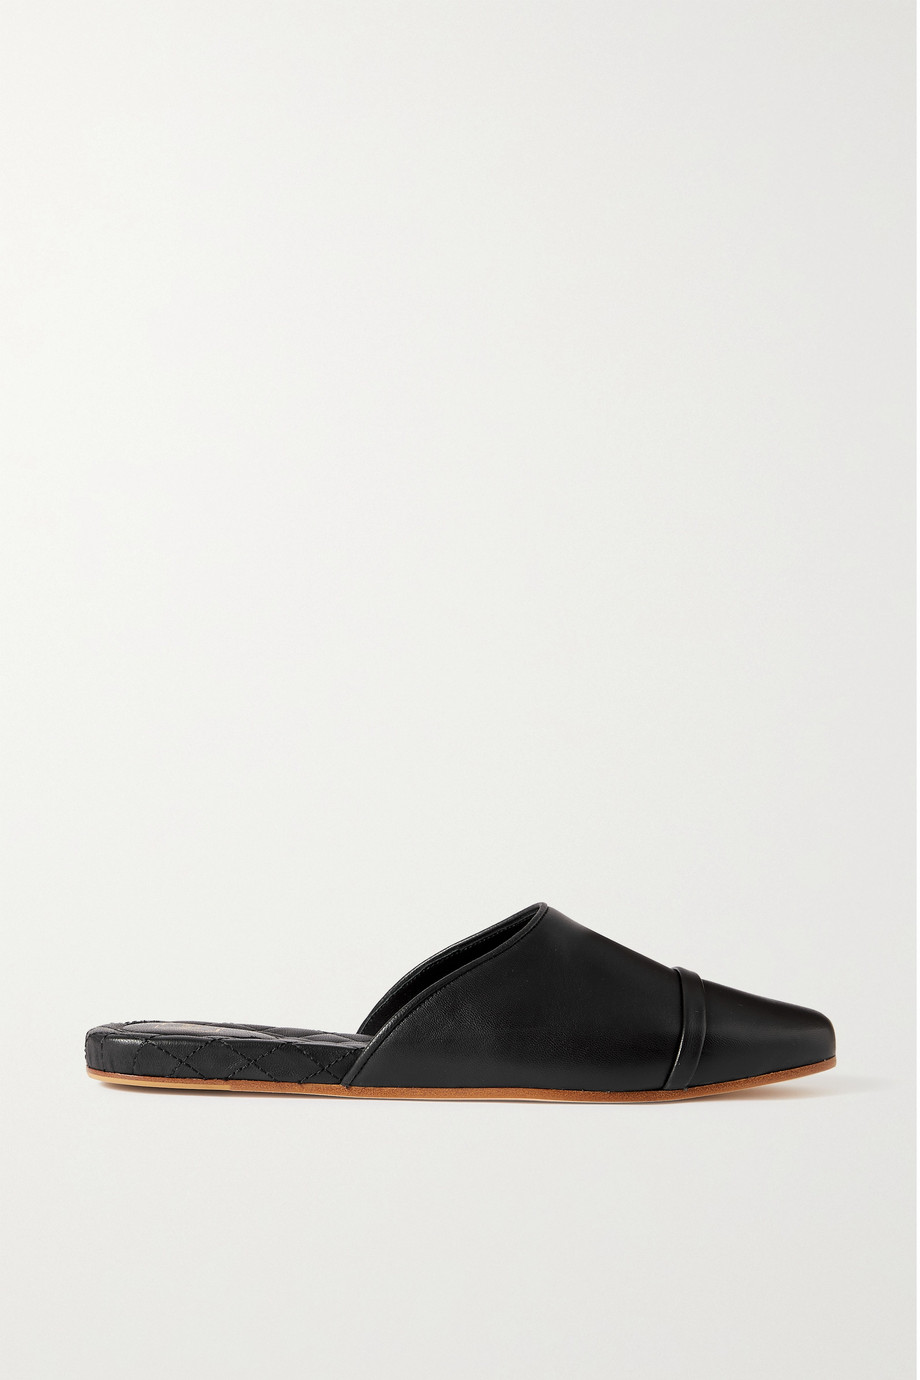 Malone Souliers Rene leather slippers